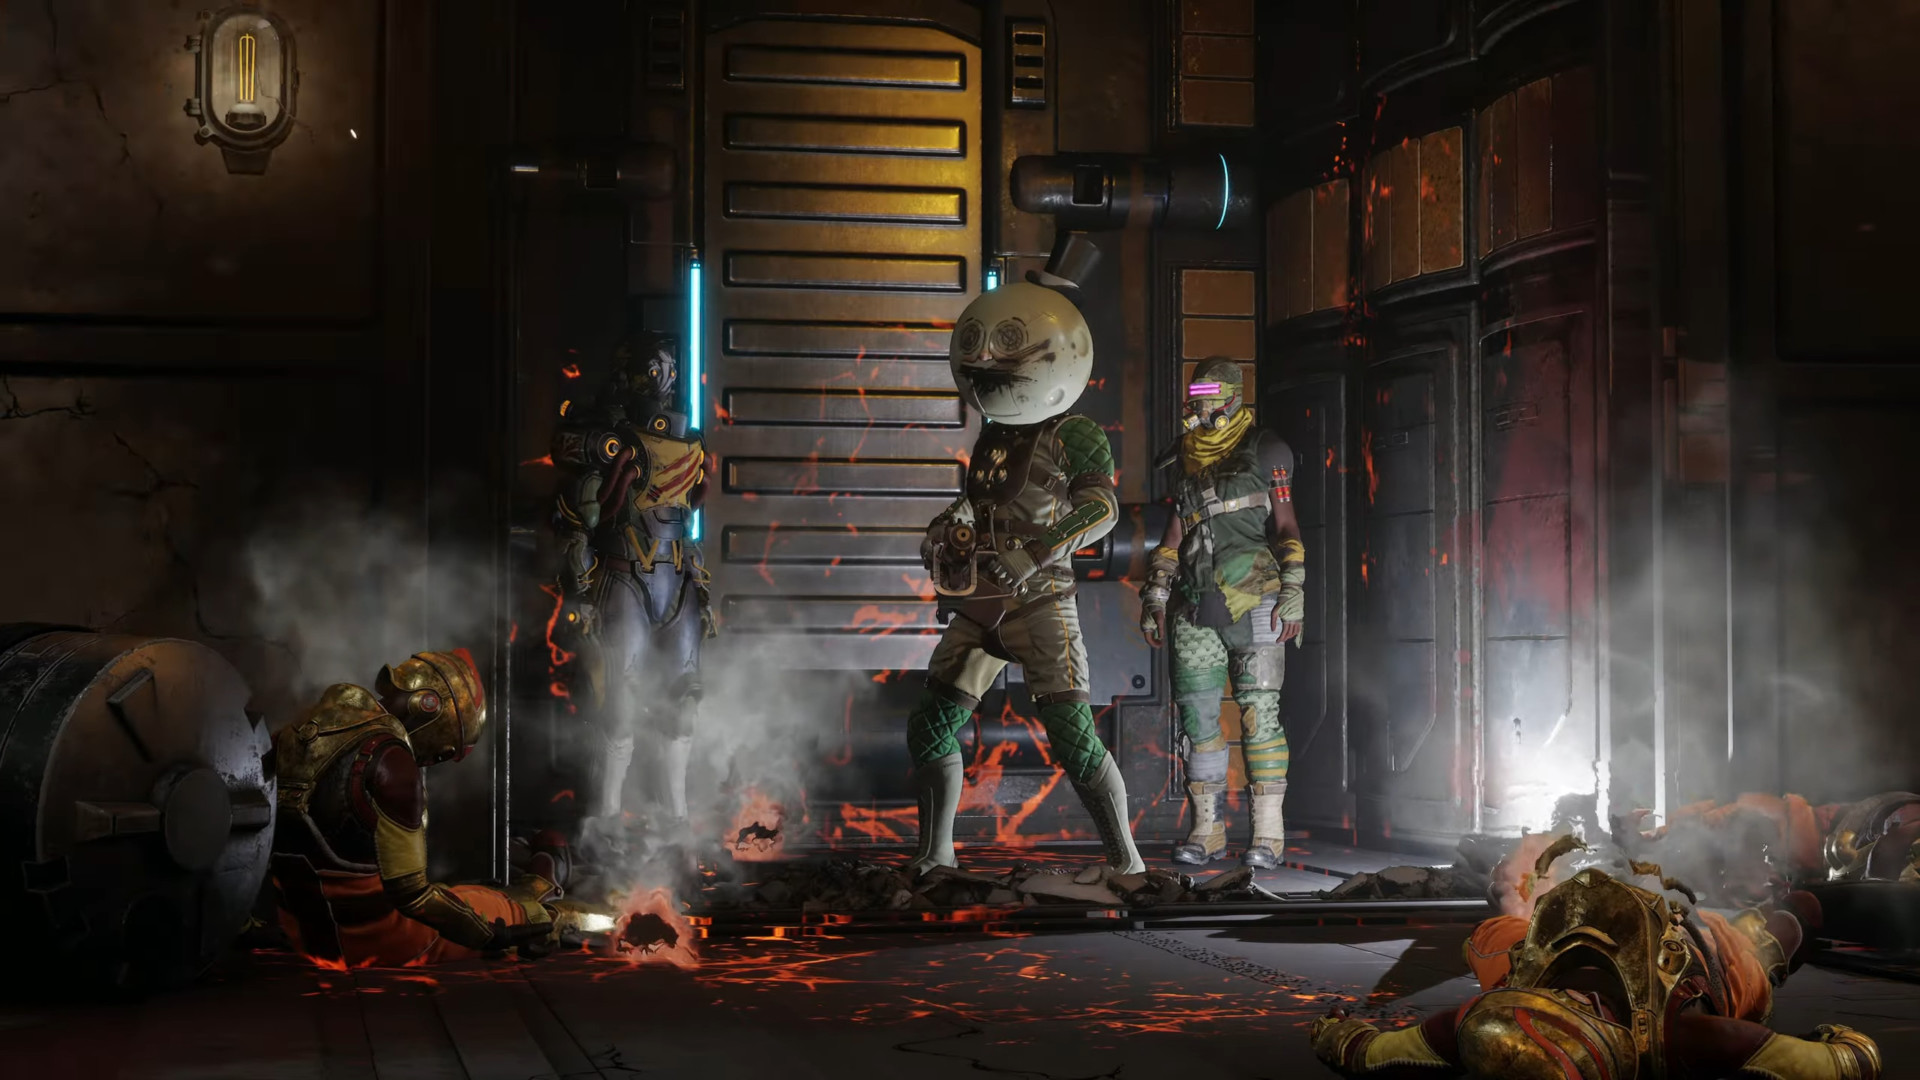 The-Outer-Worlds_-Peril-on-Gorgon-–-Official-Trailer-0-42-screenshot.jpg